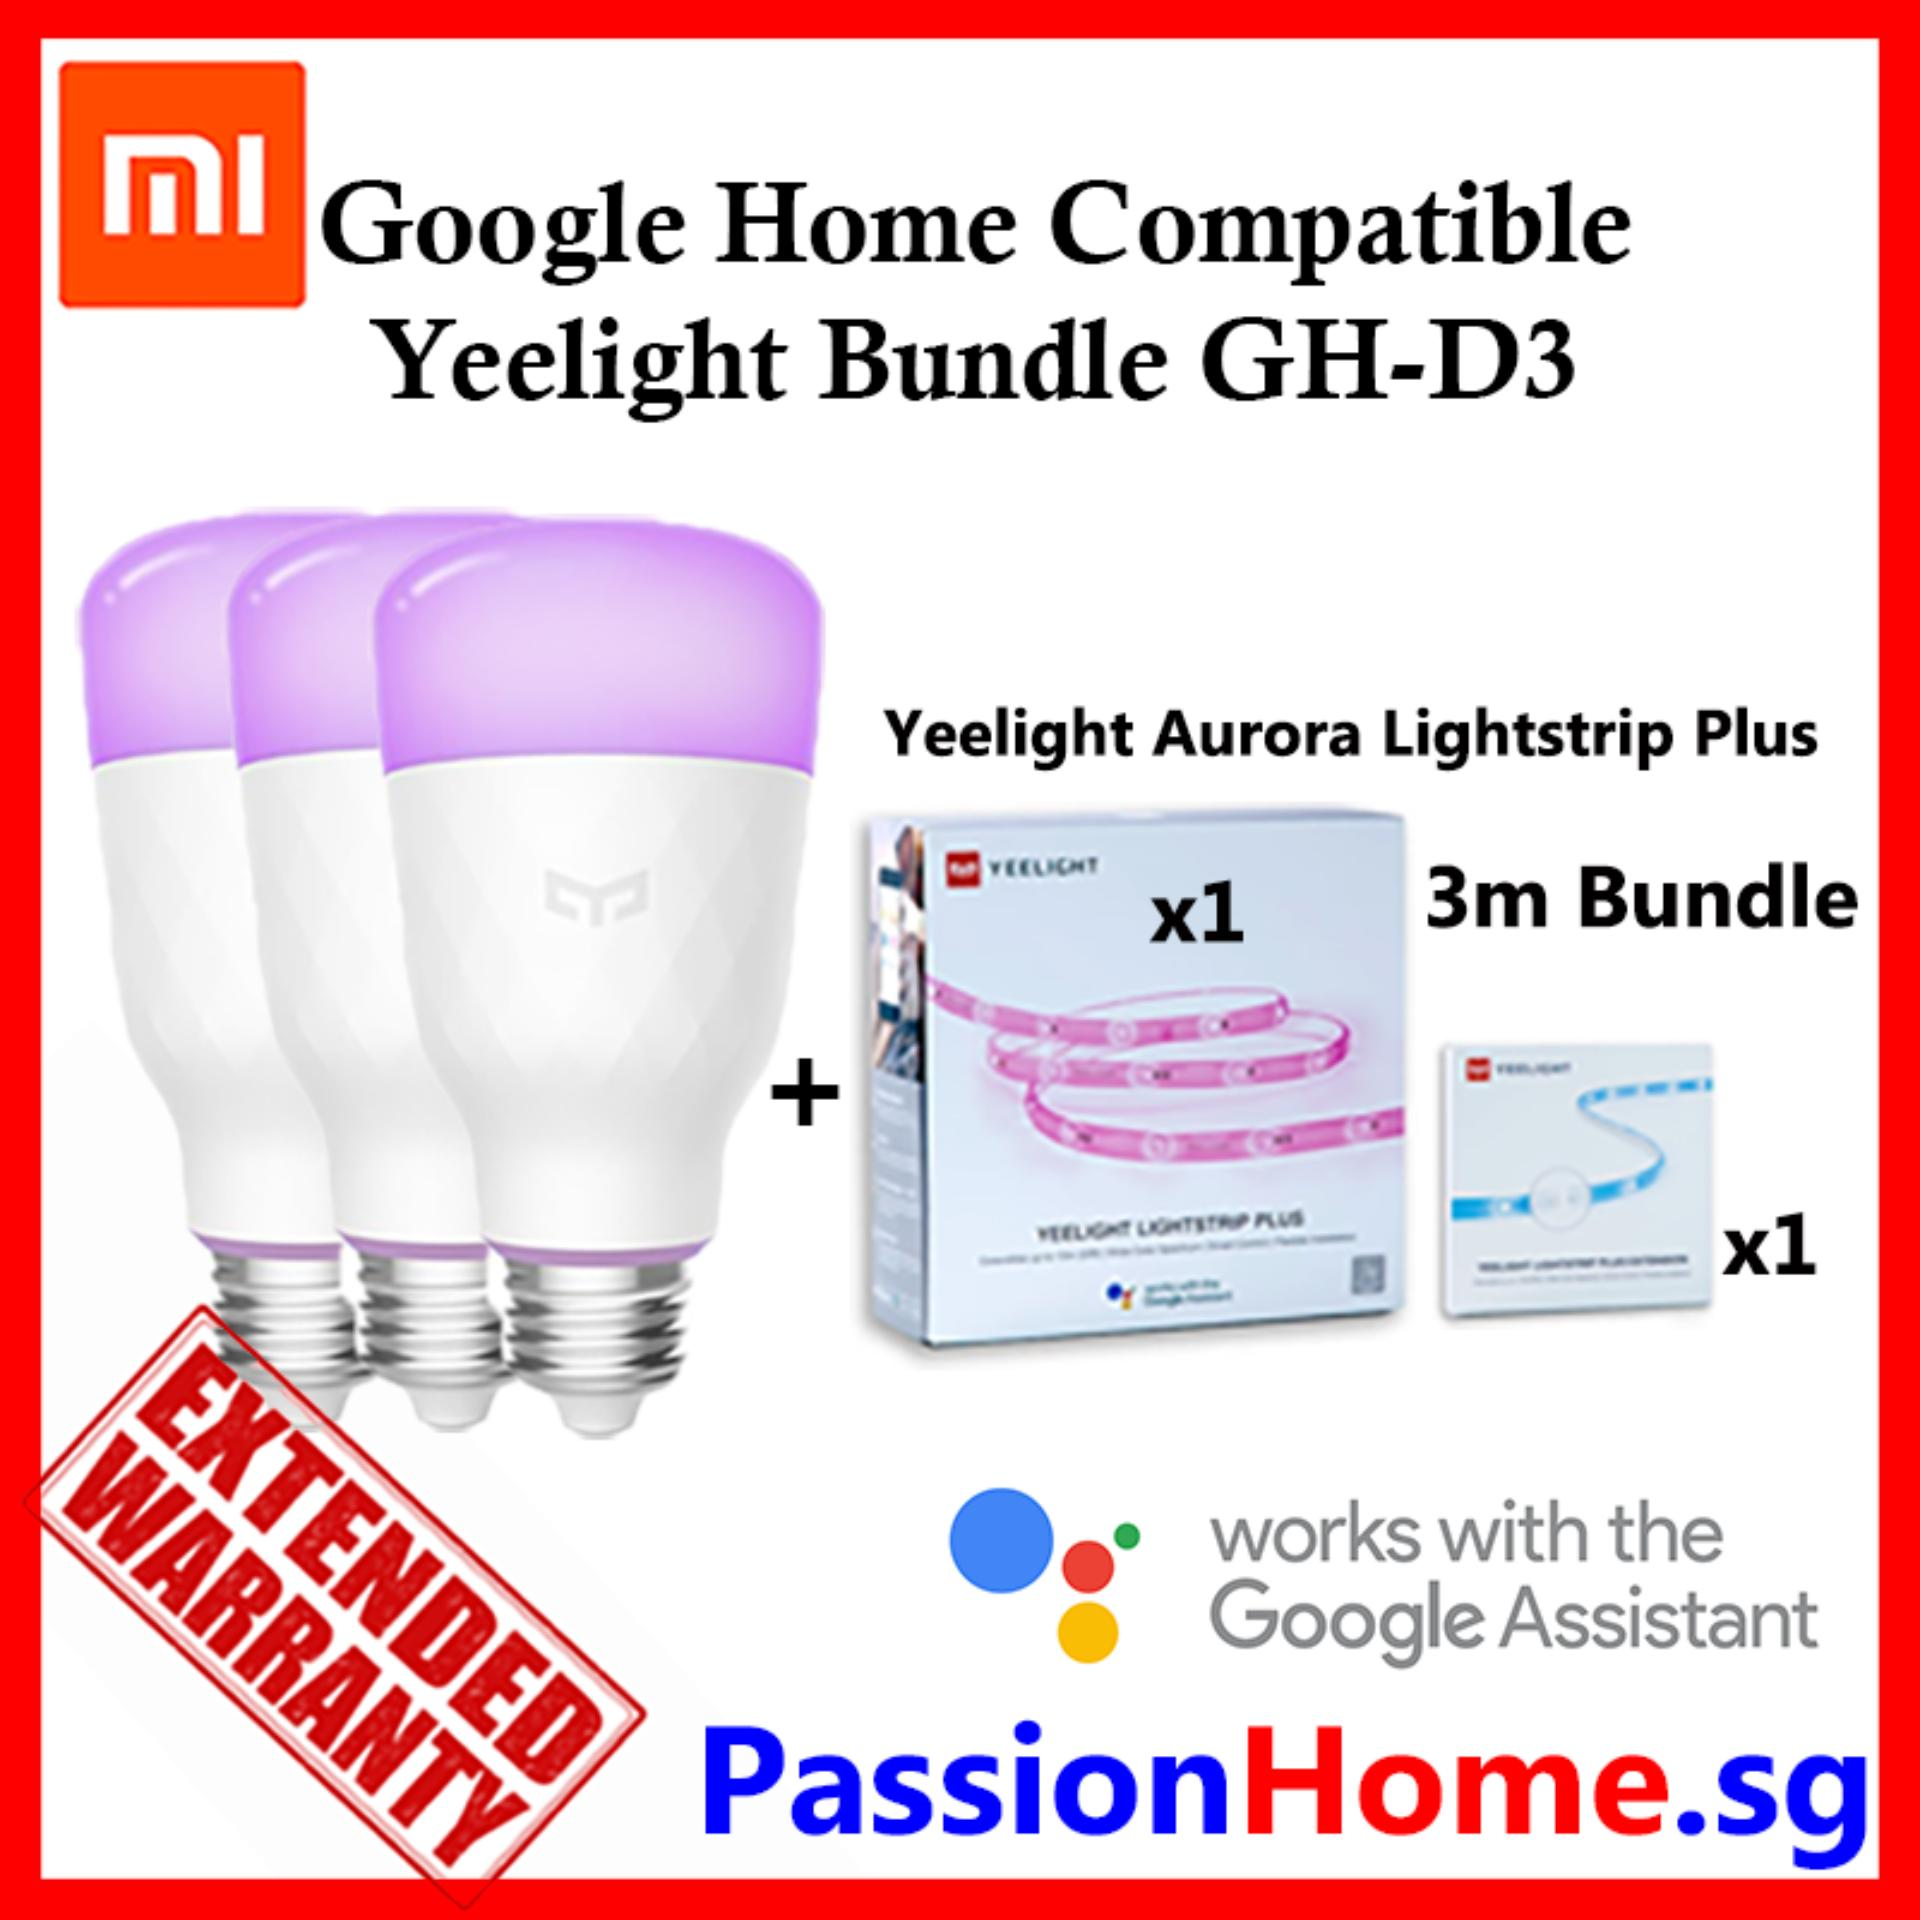 Google Home Compatible Yeelight Bundle GH-D3